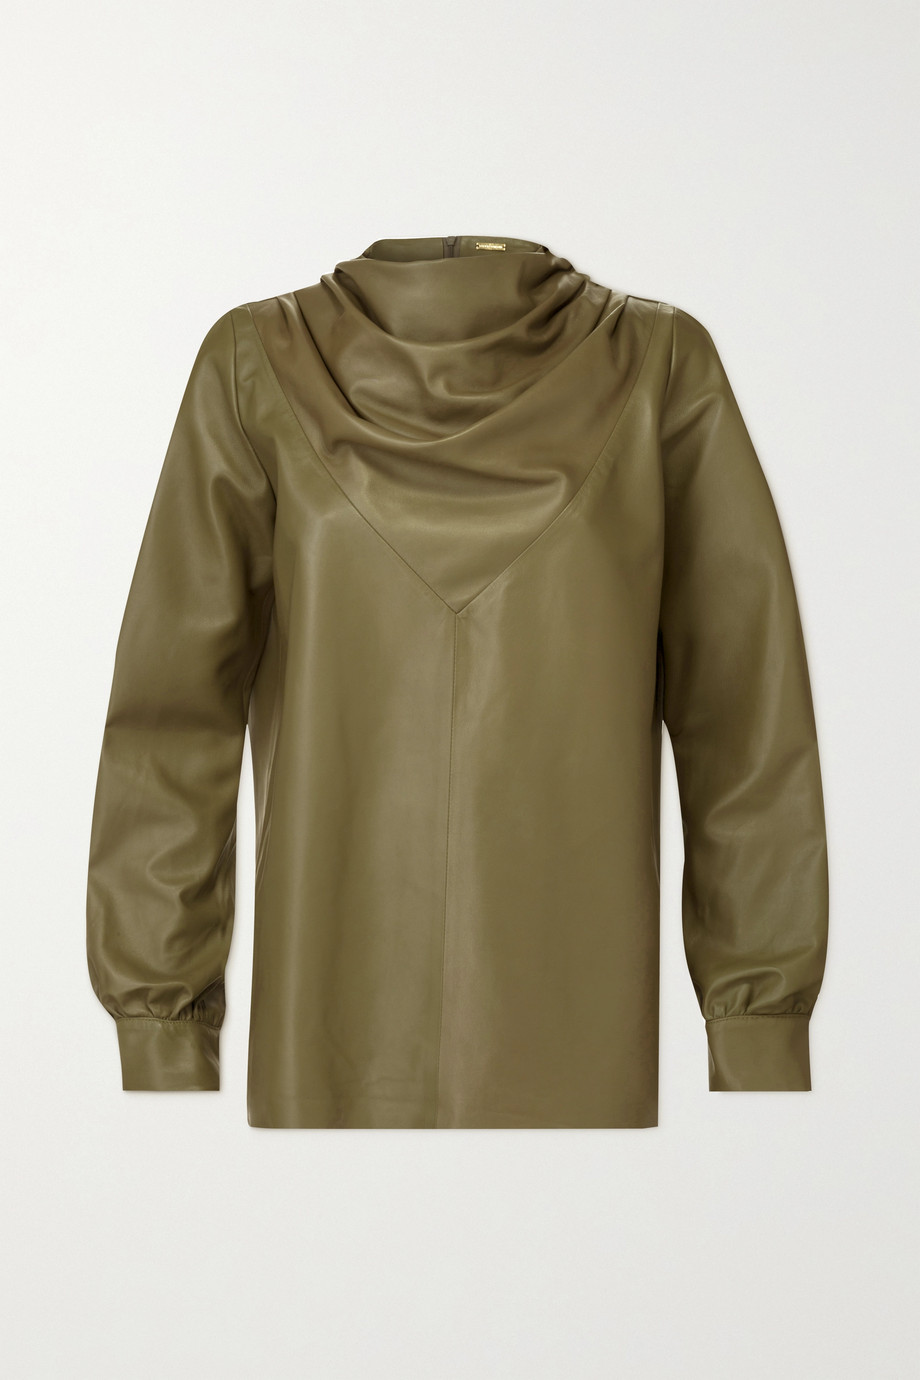 Dodo Bar Or Bilbi draped leather blouse